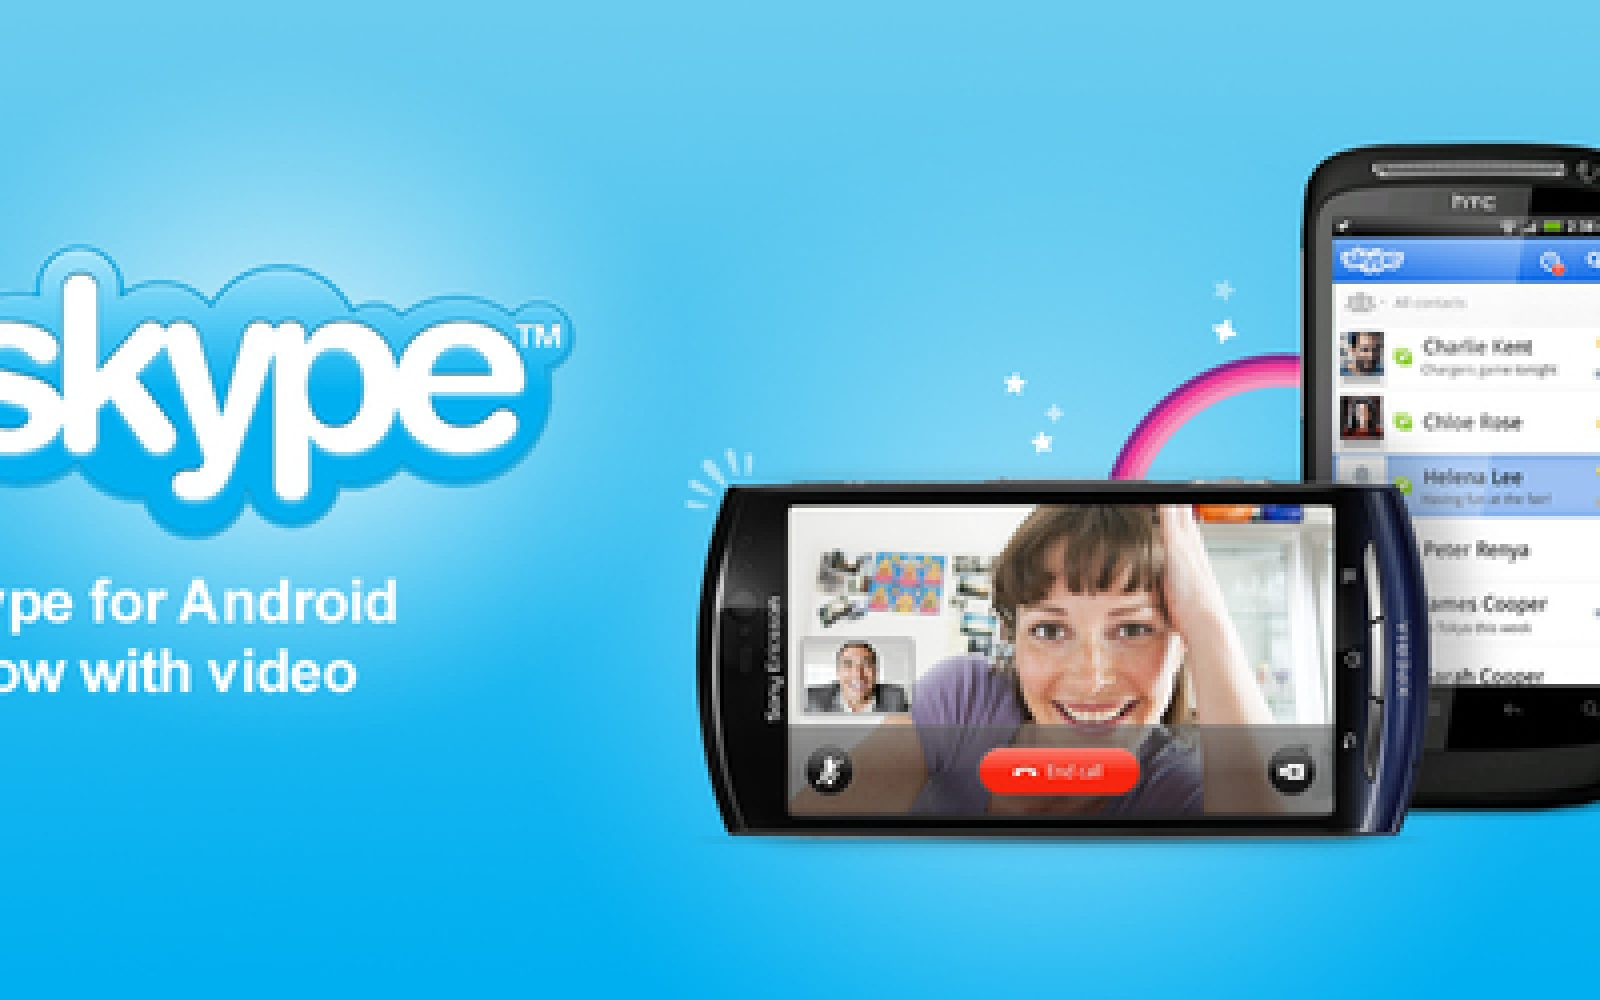 Skype updates Android app with video calls over WiFi and 3G